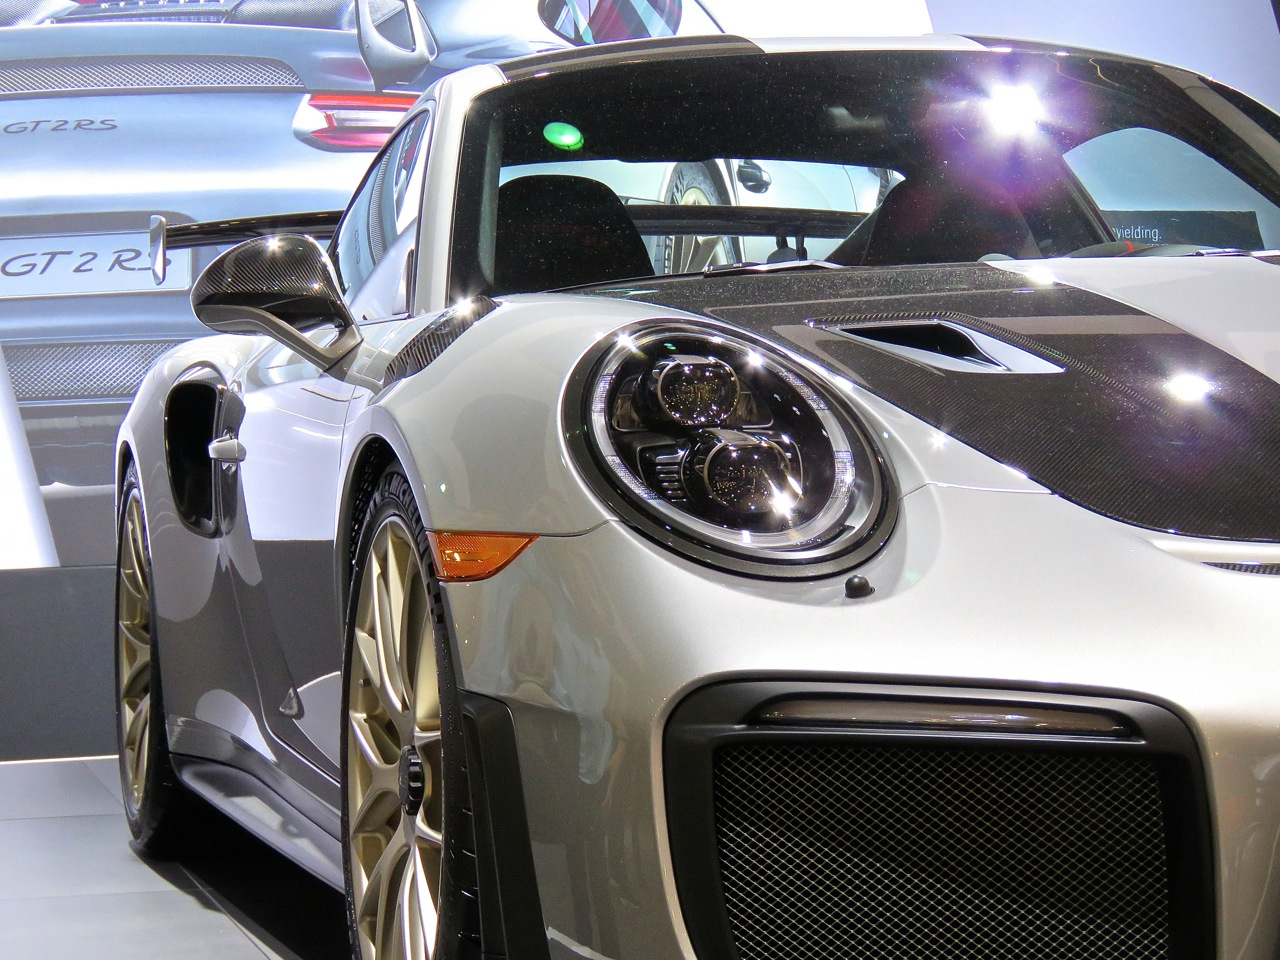 Porsche 991.2 GT2 RS Philly 2